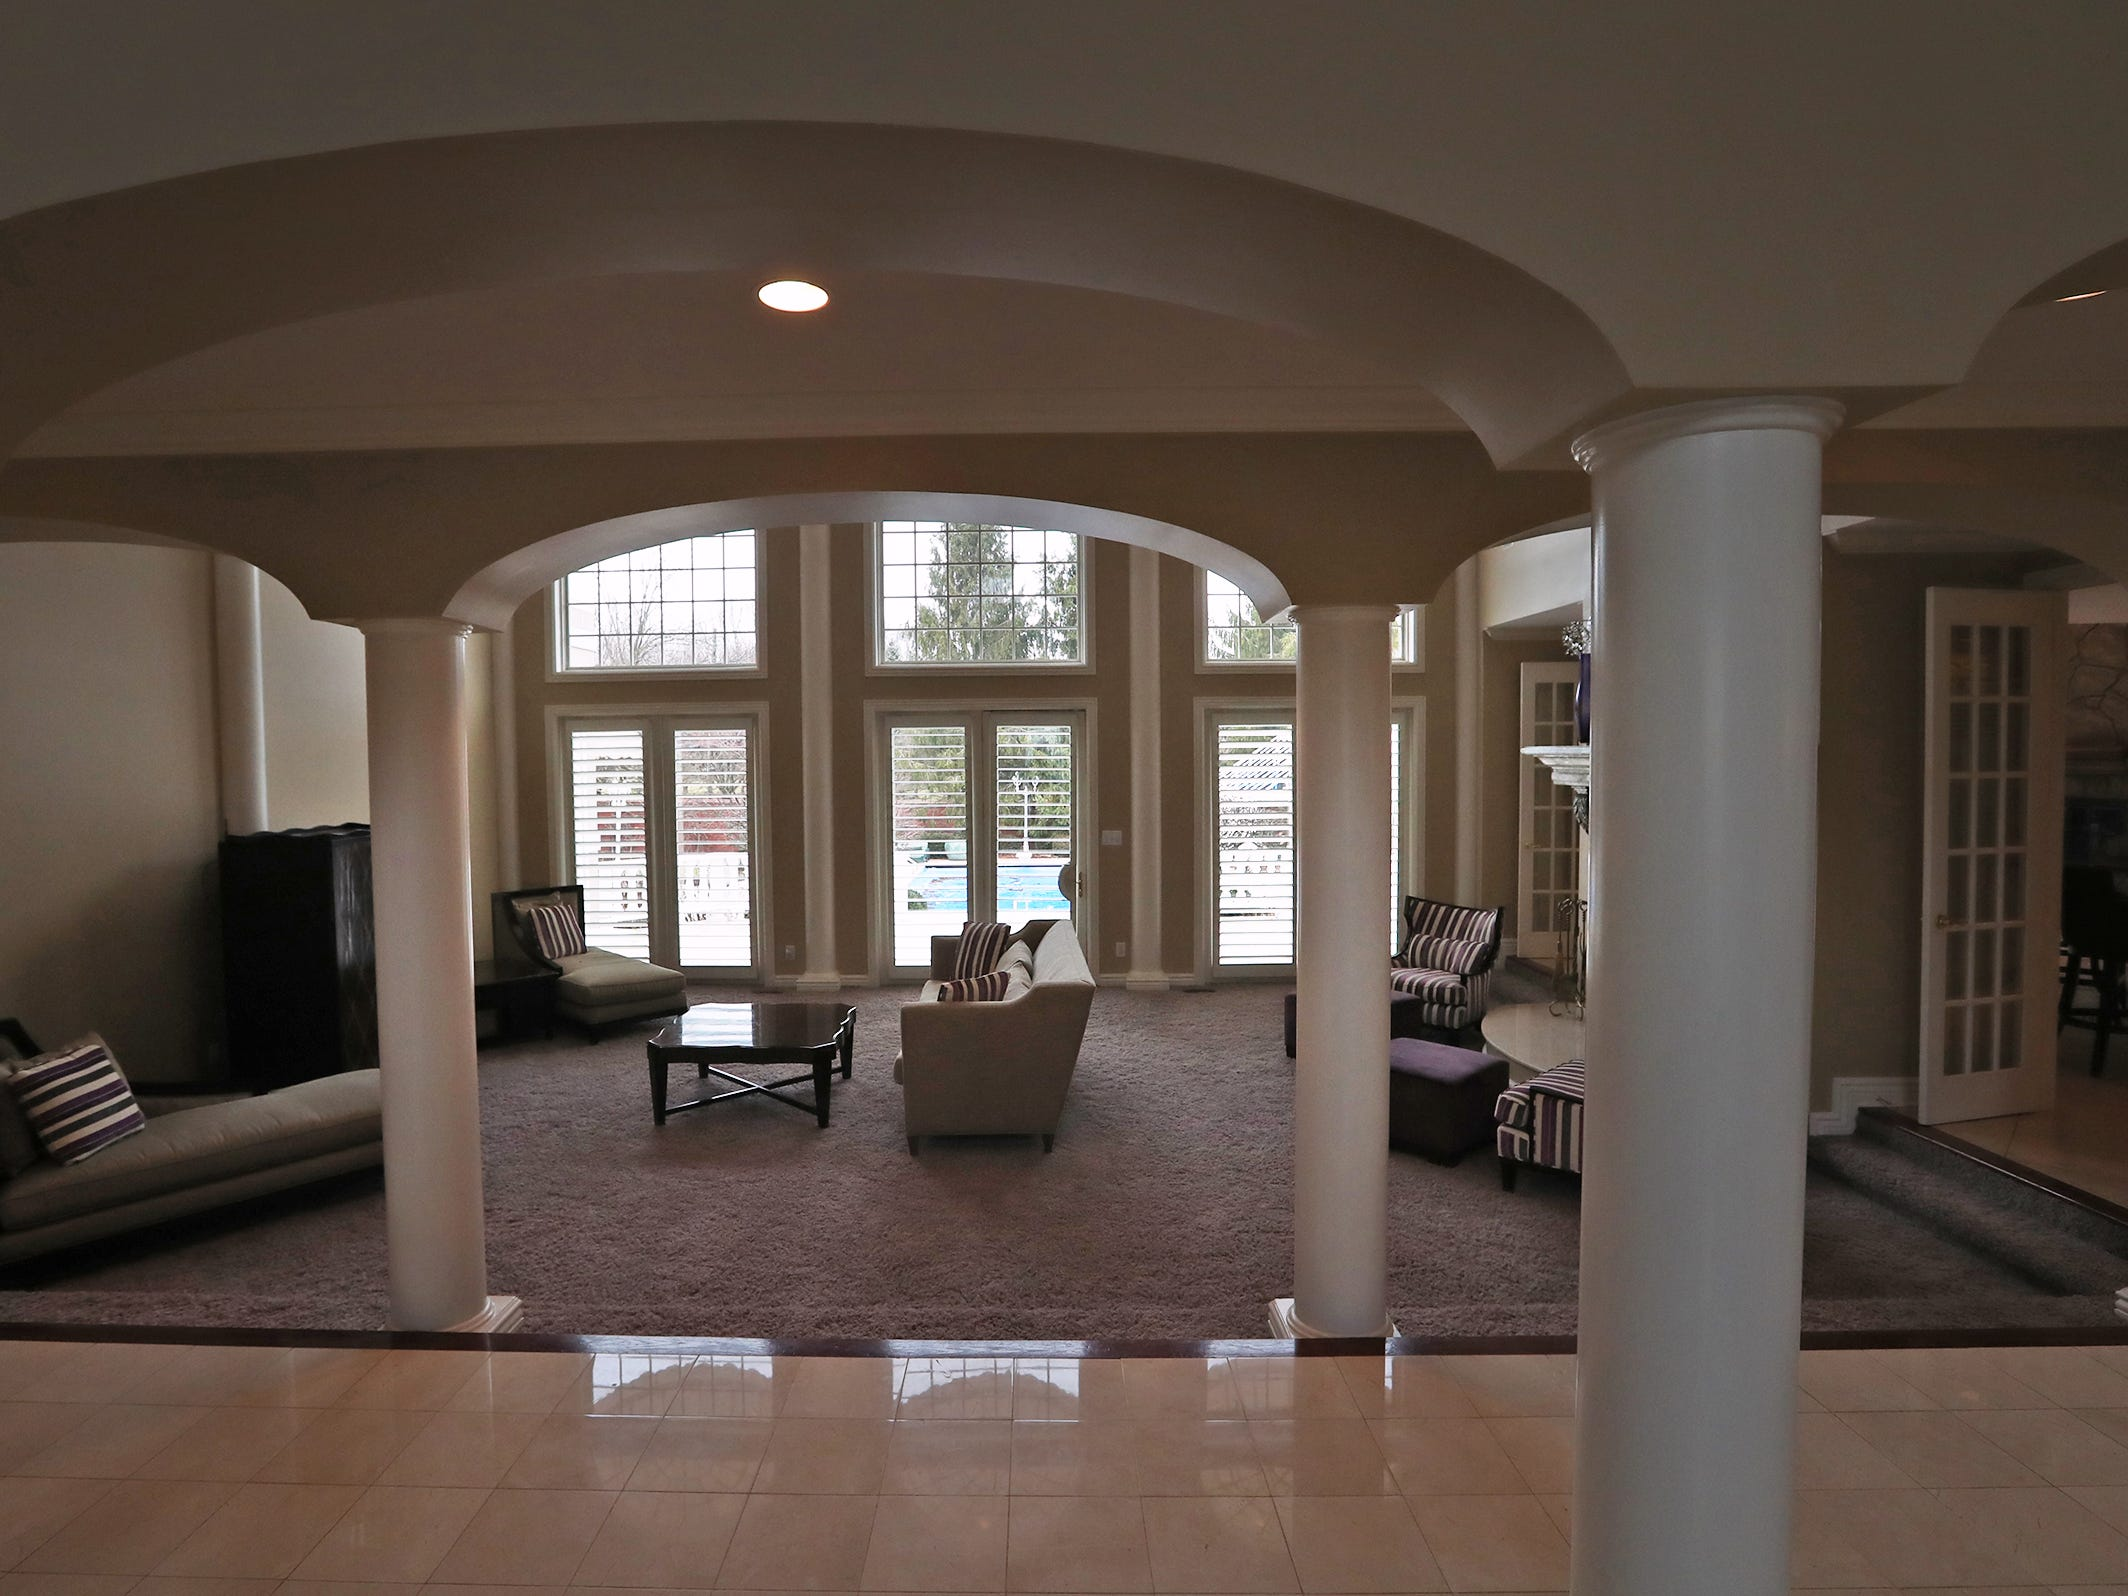 This is the first floor living area in the home at 1270 Laurelwood Ct. in Carmel, Friday, Dec. 28, 2018.